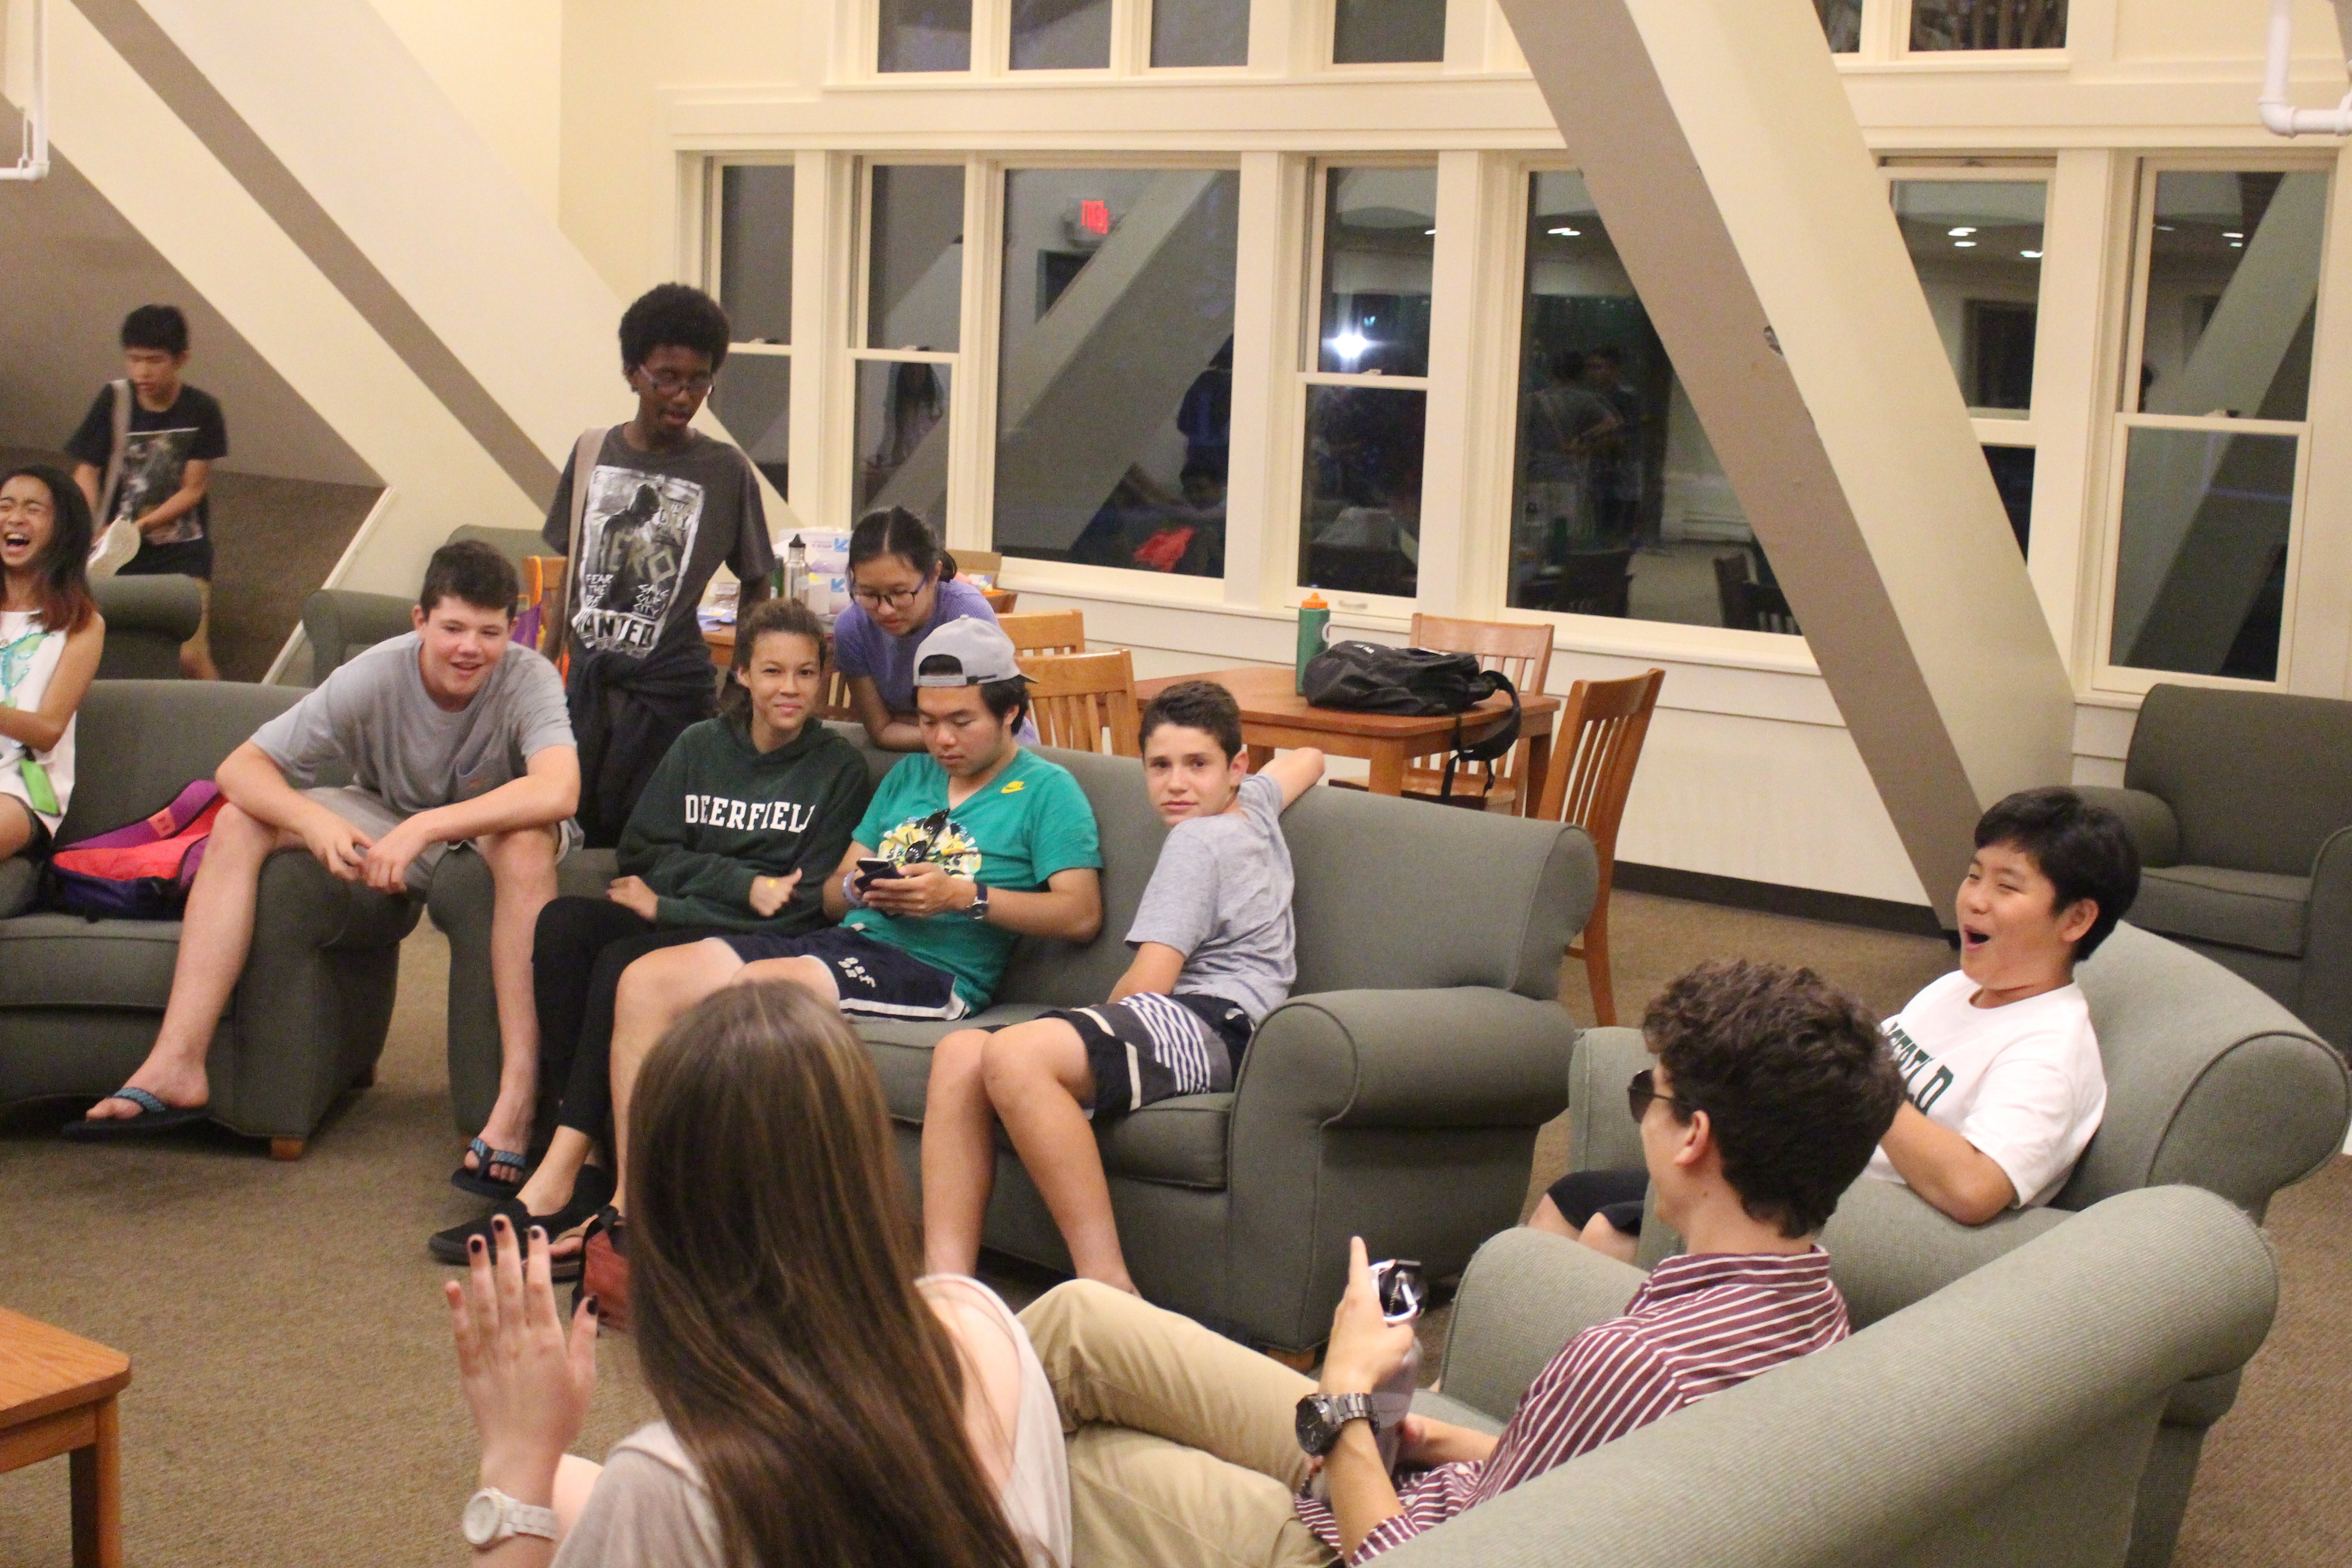 Students hanging out in the Dorm Common Room.